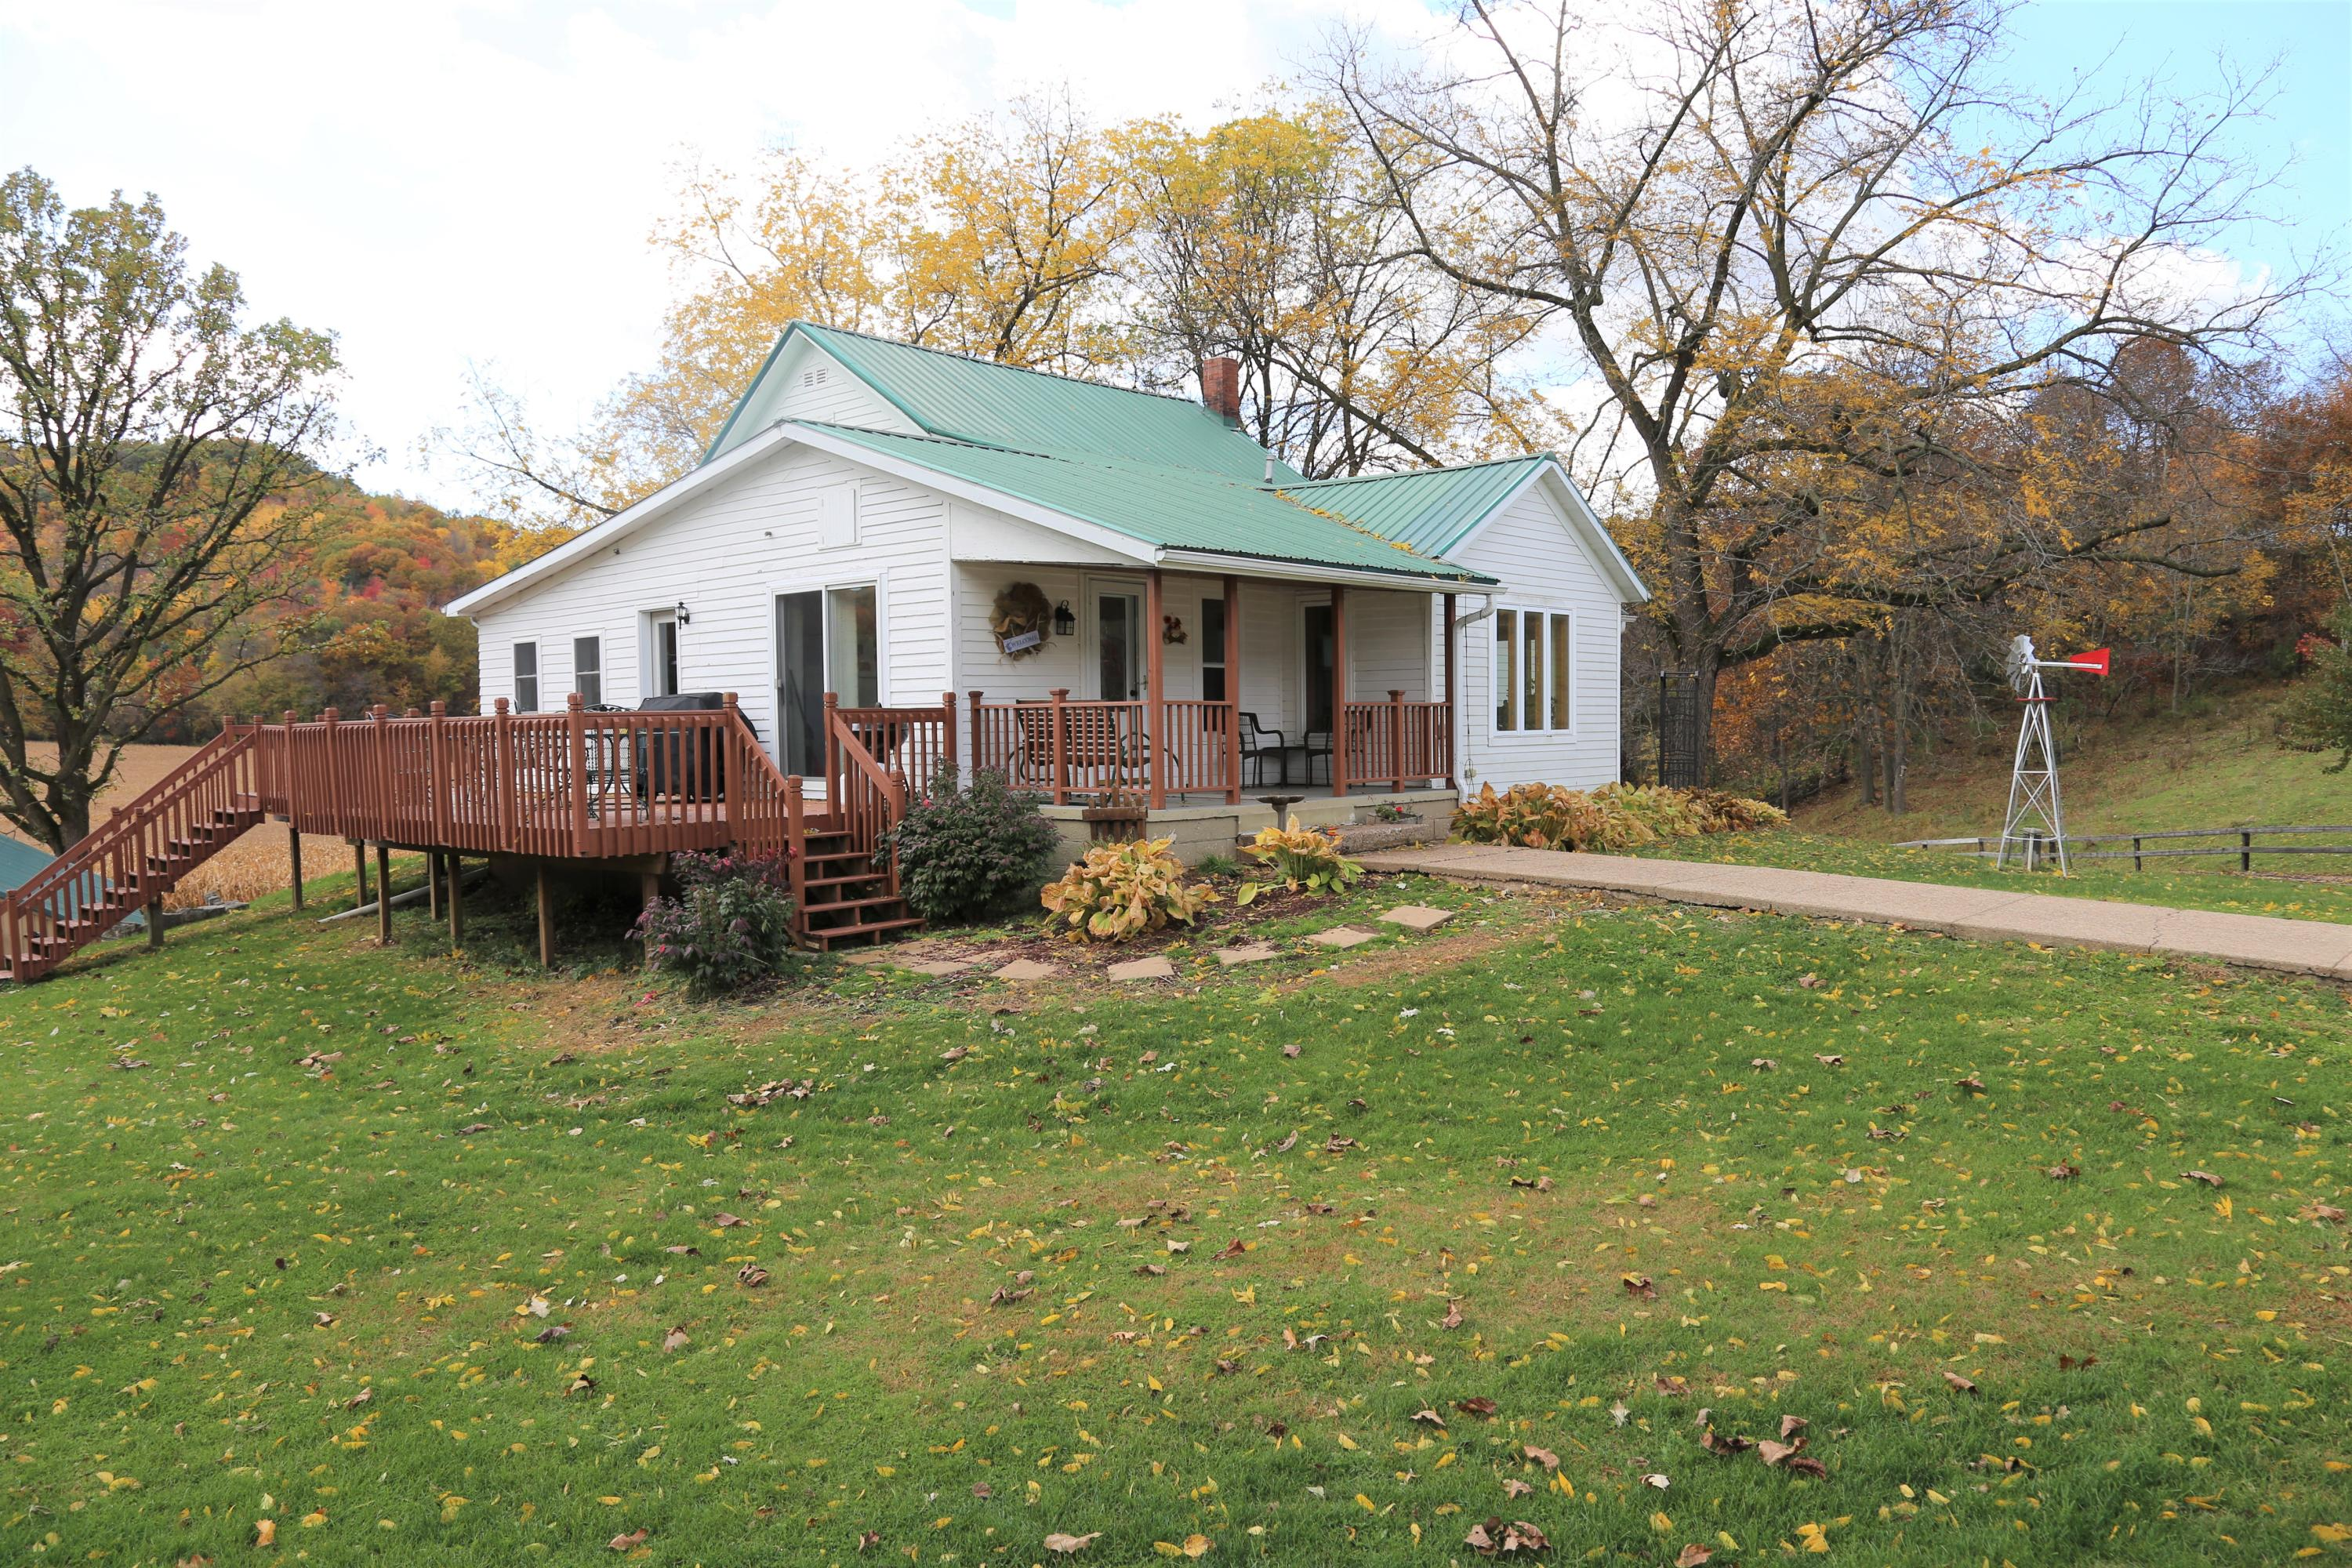 20642 Kale Rd #2, Leon, Wisconsin 54656, 4 Bedrooms Bedrooms, ,1 BathroomBathrooms,Single-family,For Sale,Kale Rd #2,1714429